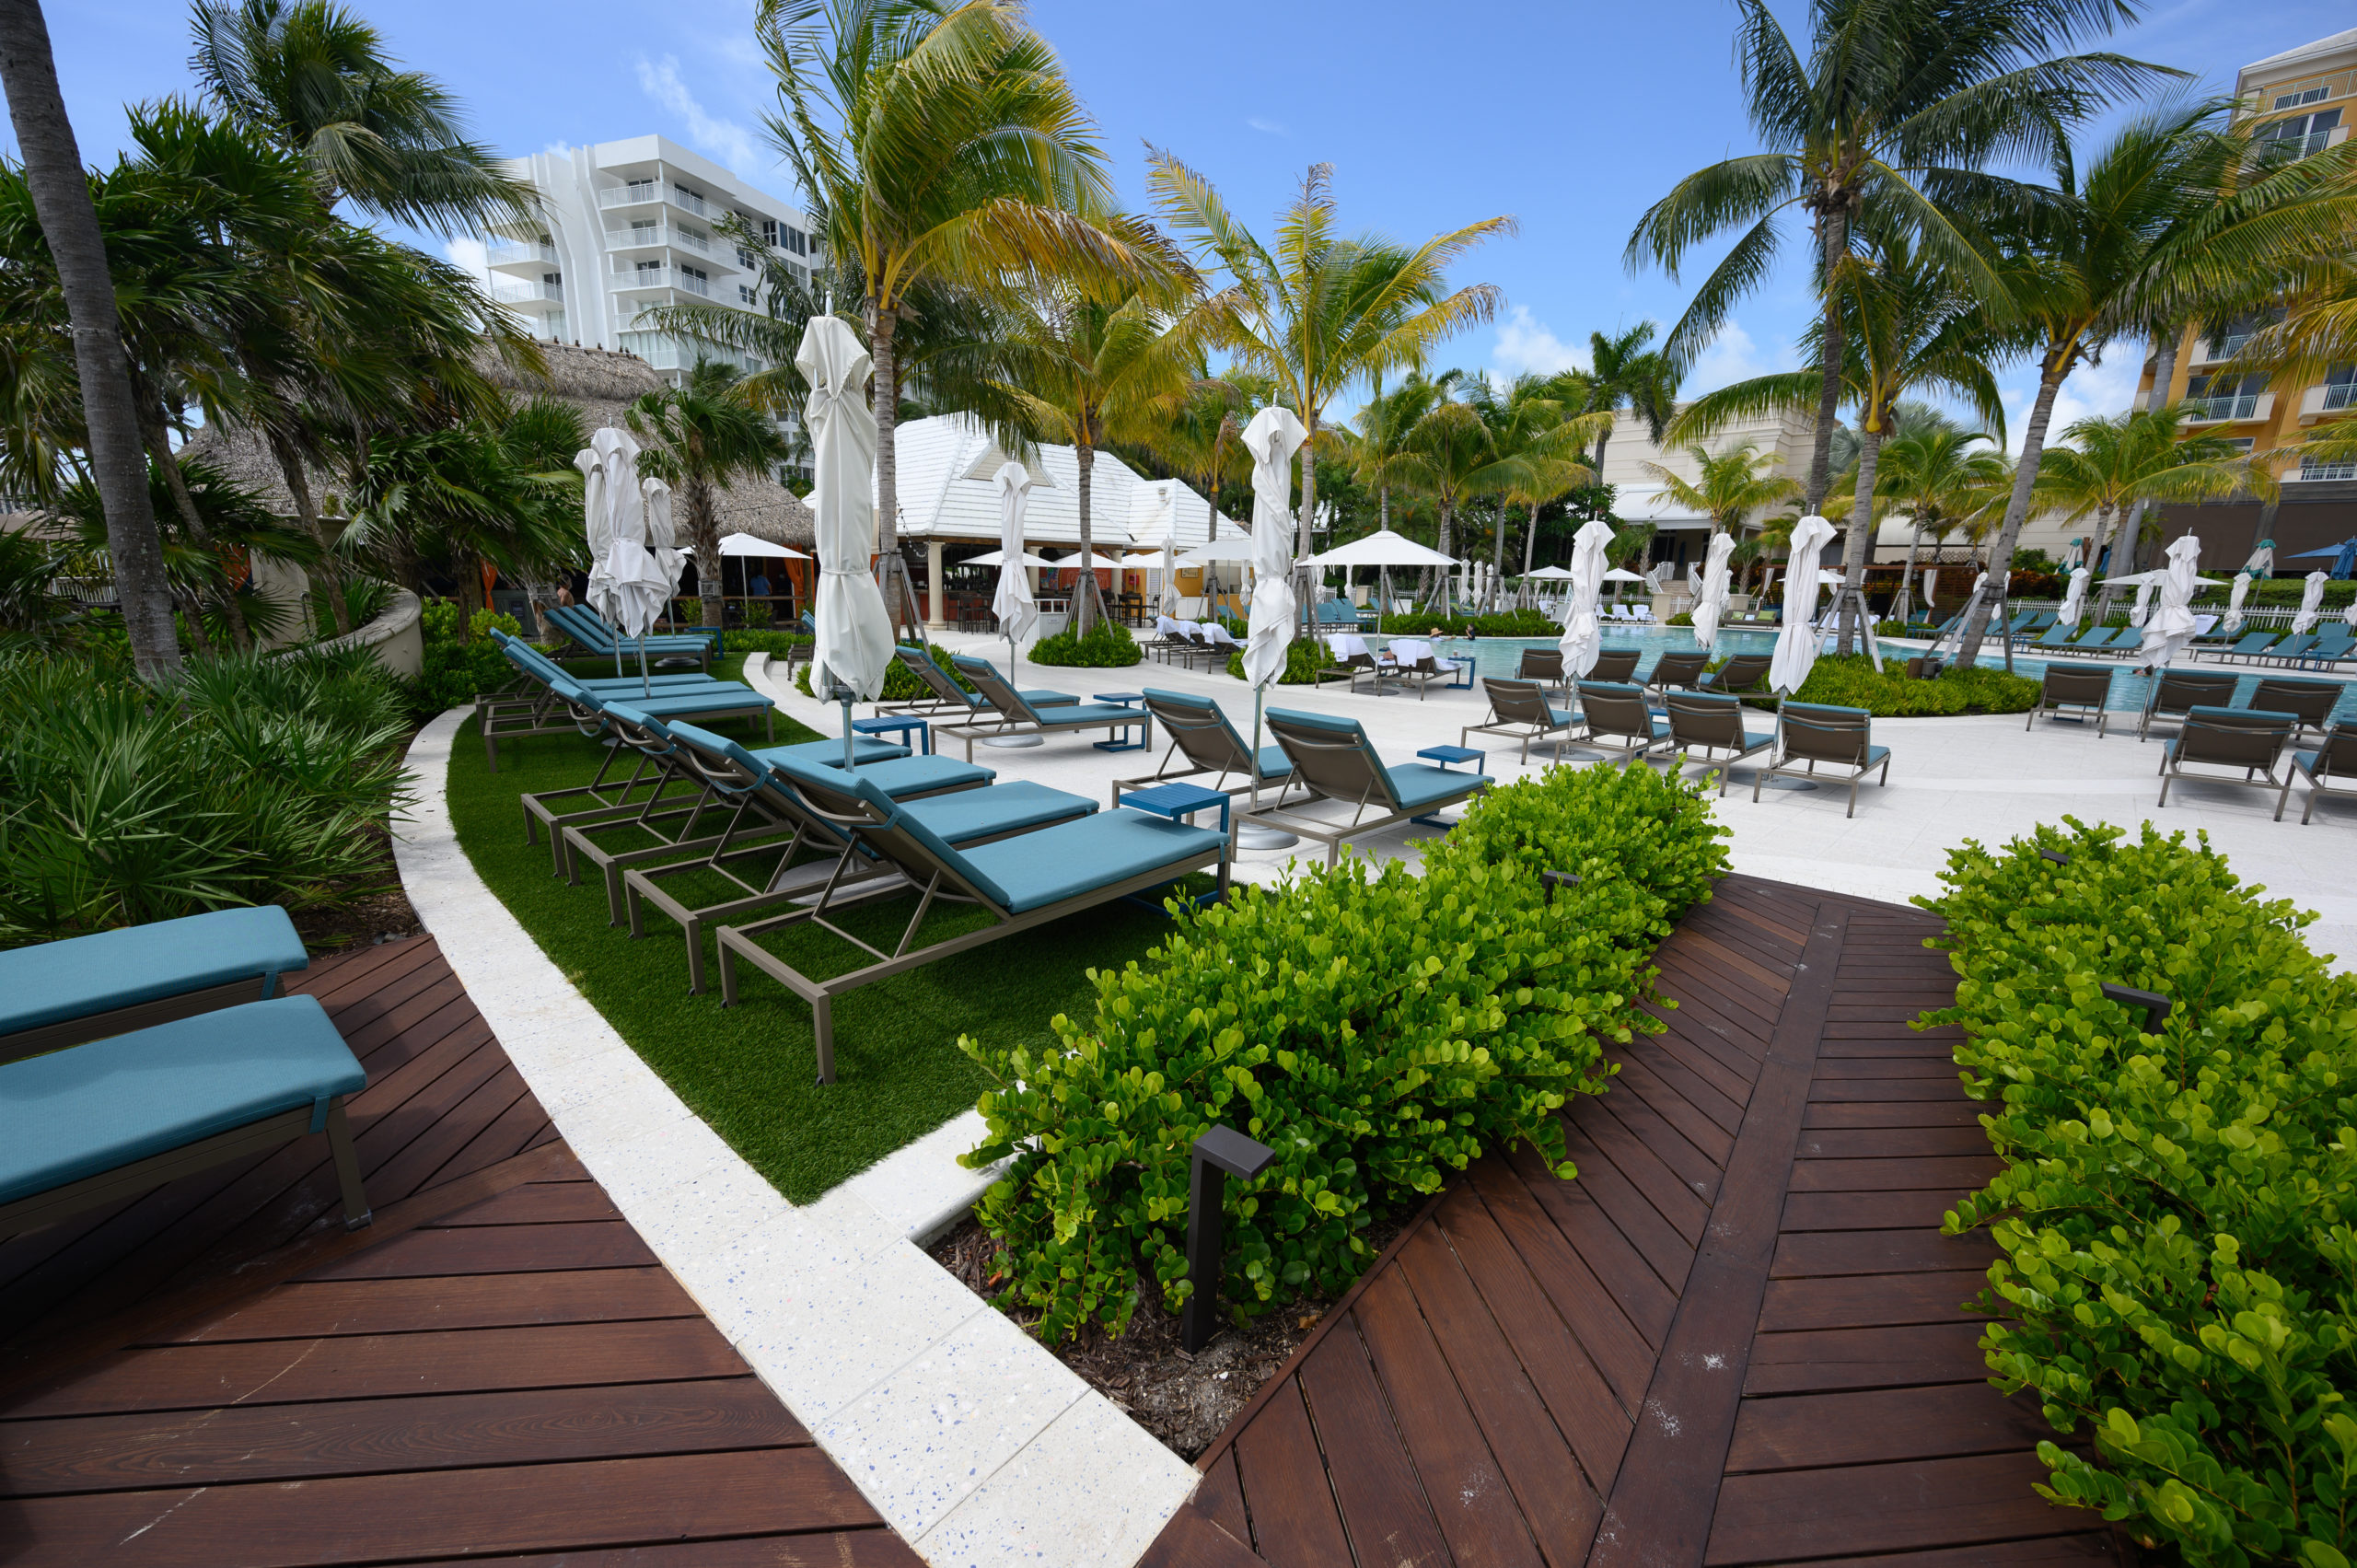 Key Biscayne Ritz Carlton, Post-Construction Photography – August 2020